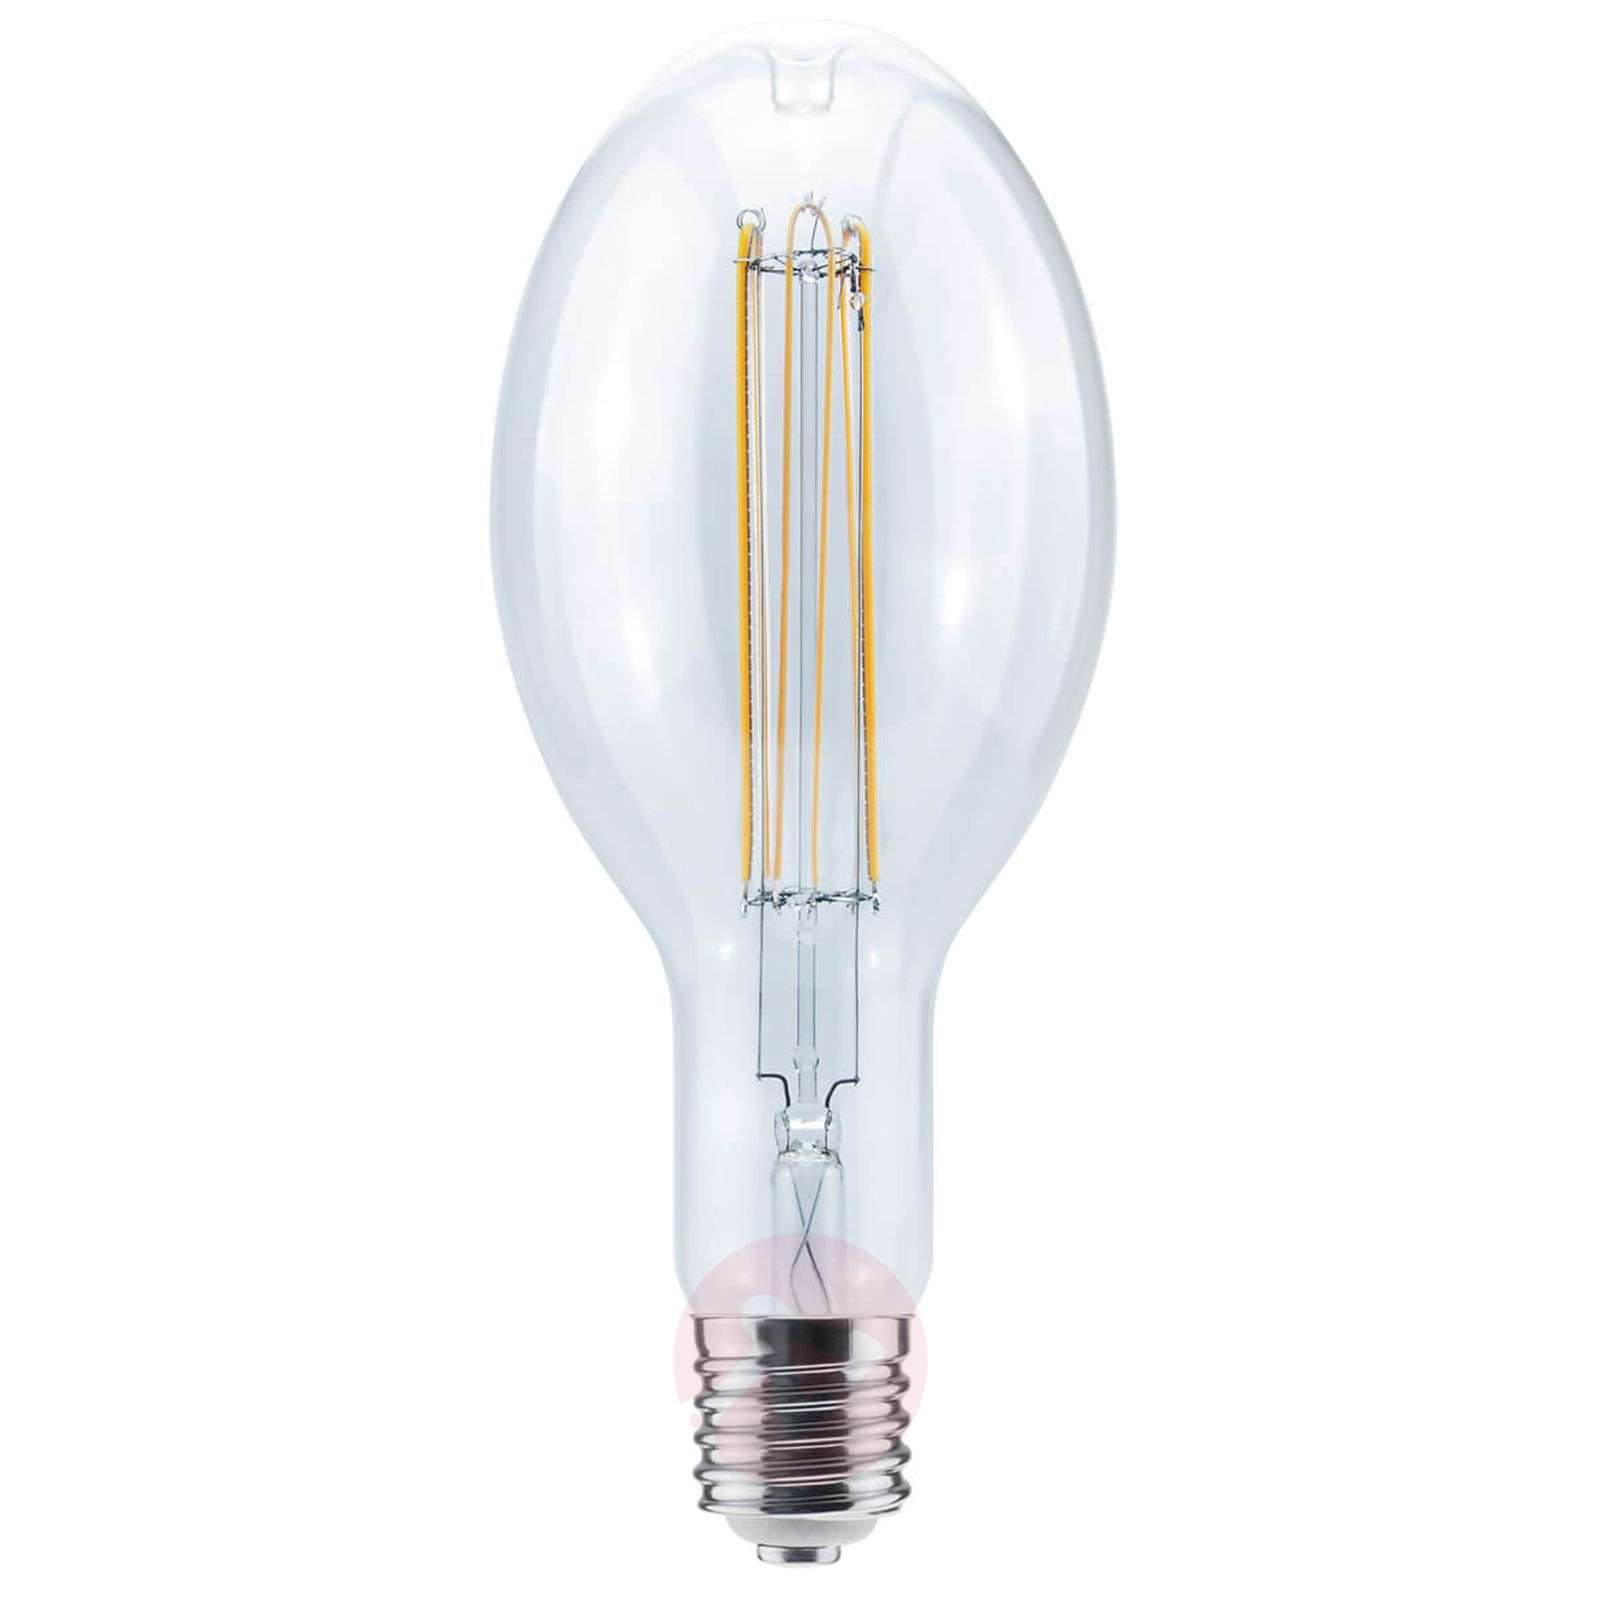 E40 18W 922 ellipse LED Curved U dimmable-8536190-01